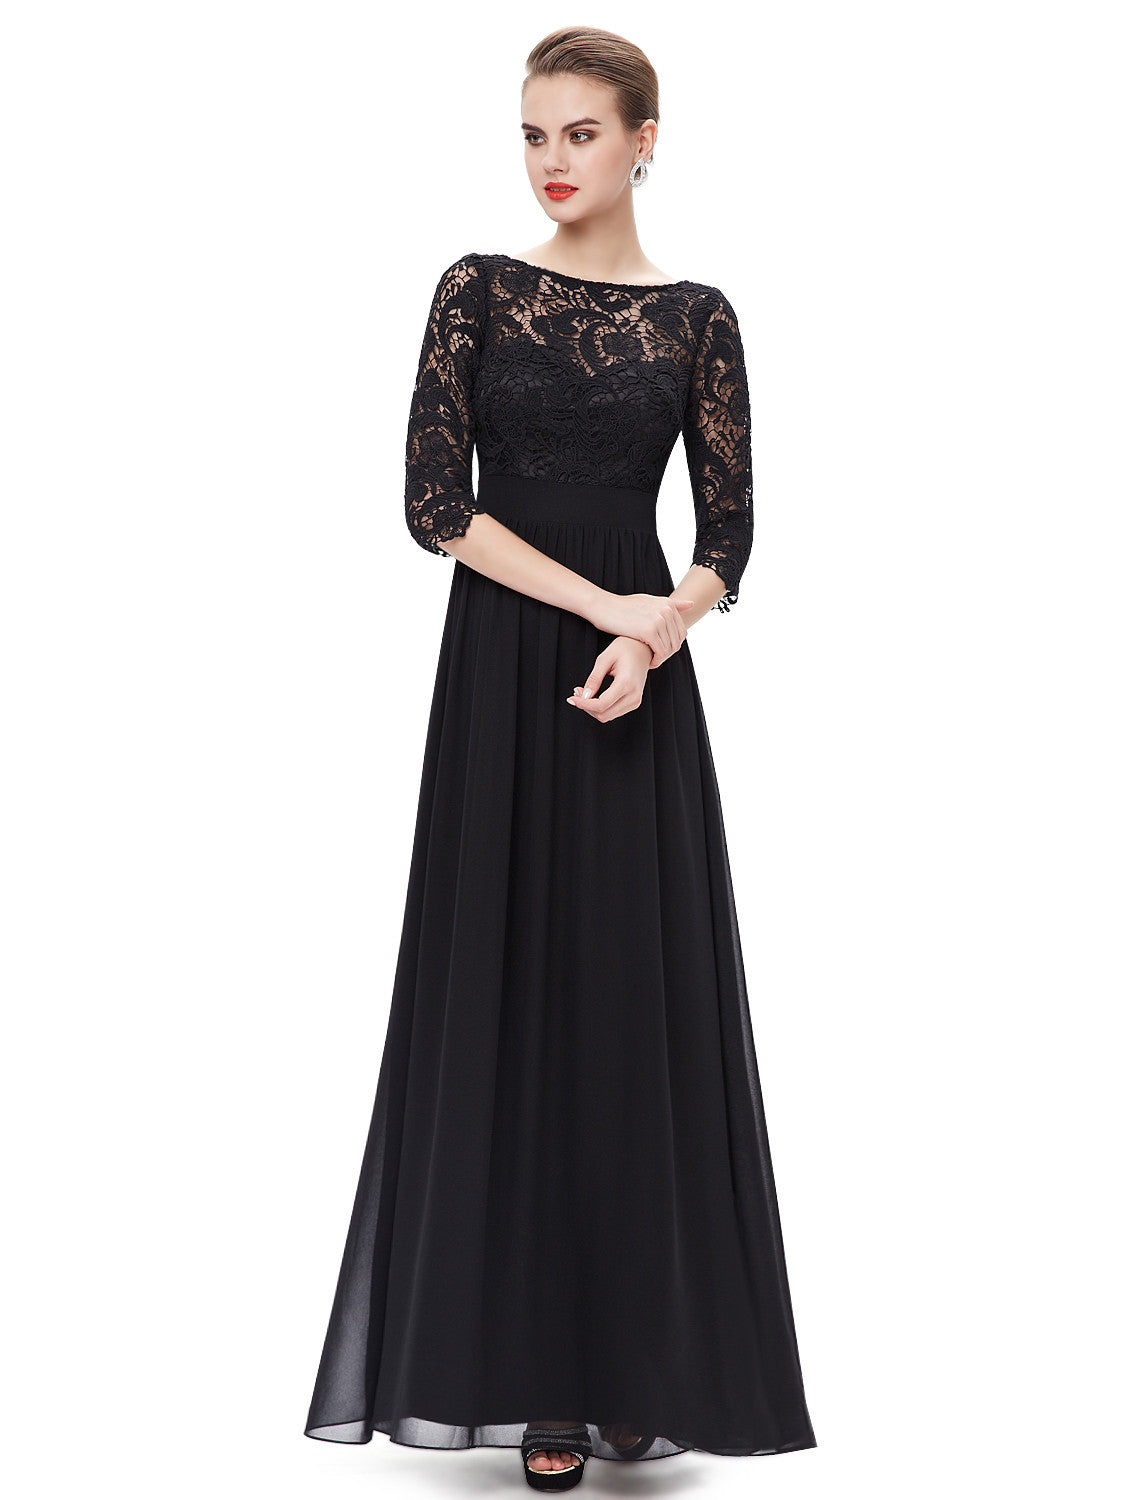 Elegant 3/4 Sleeve Lace Black Dress